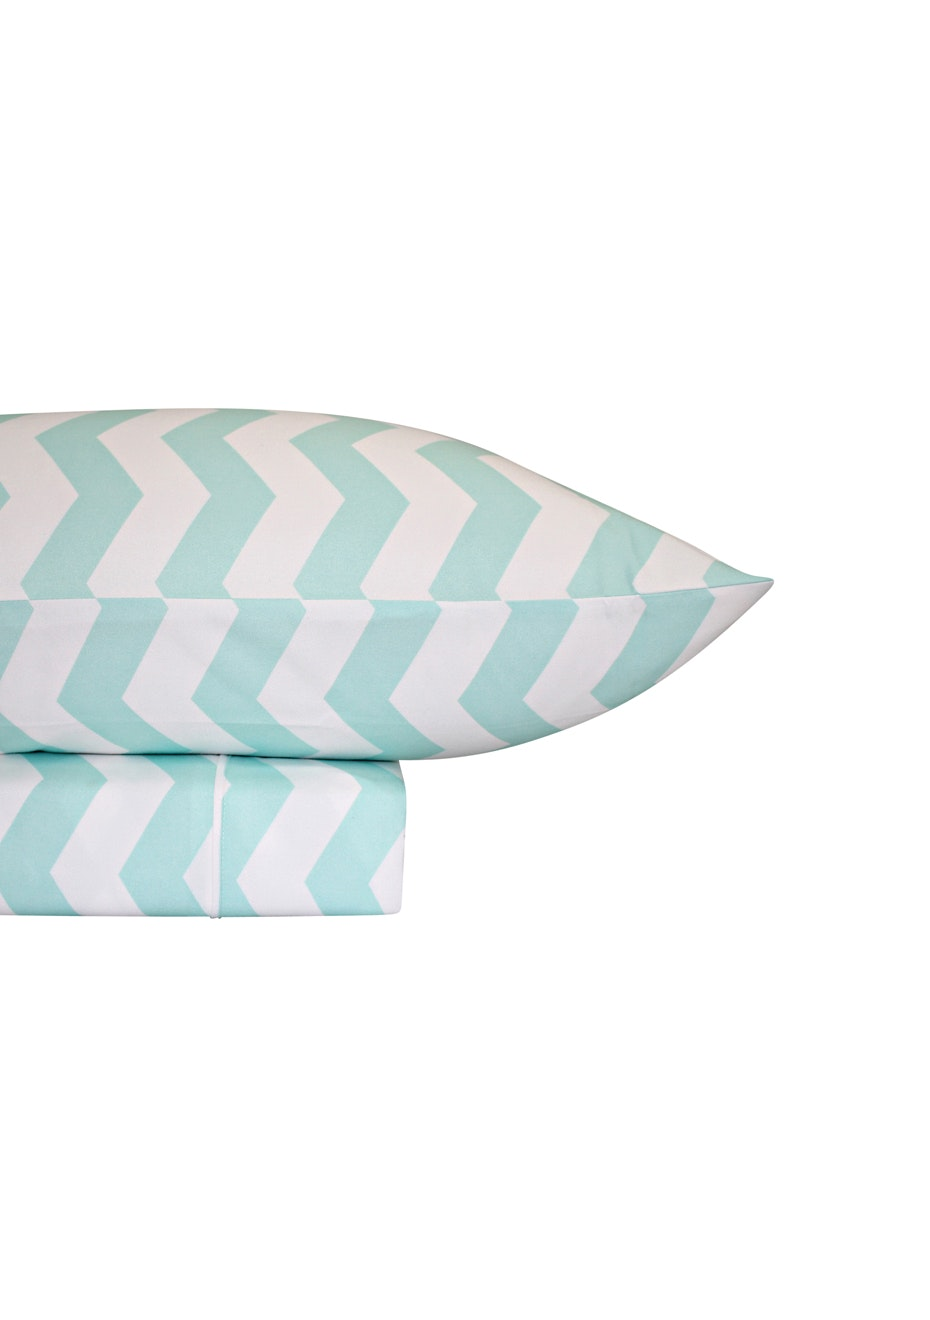 Thermal Flannel Sheet Sets - Chevron Design - Ice - Single Bed